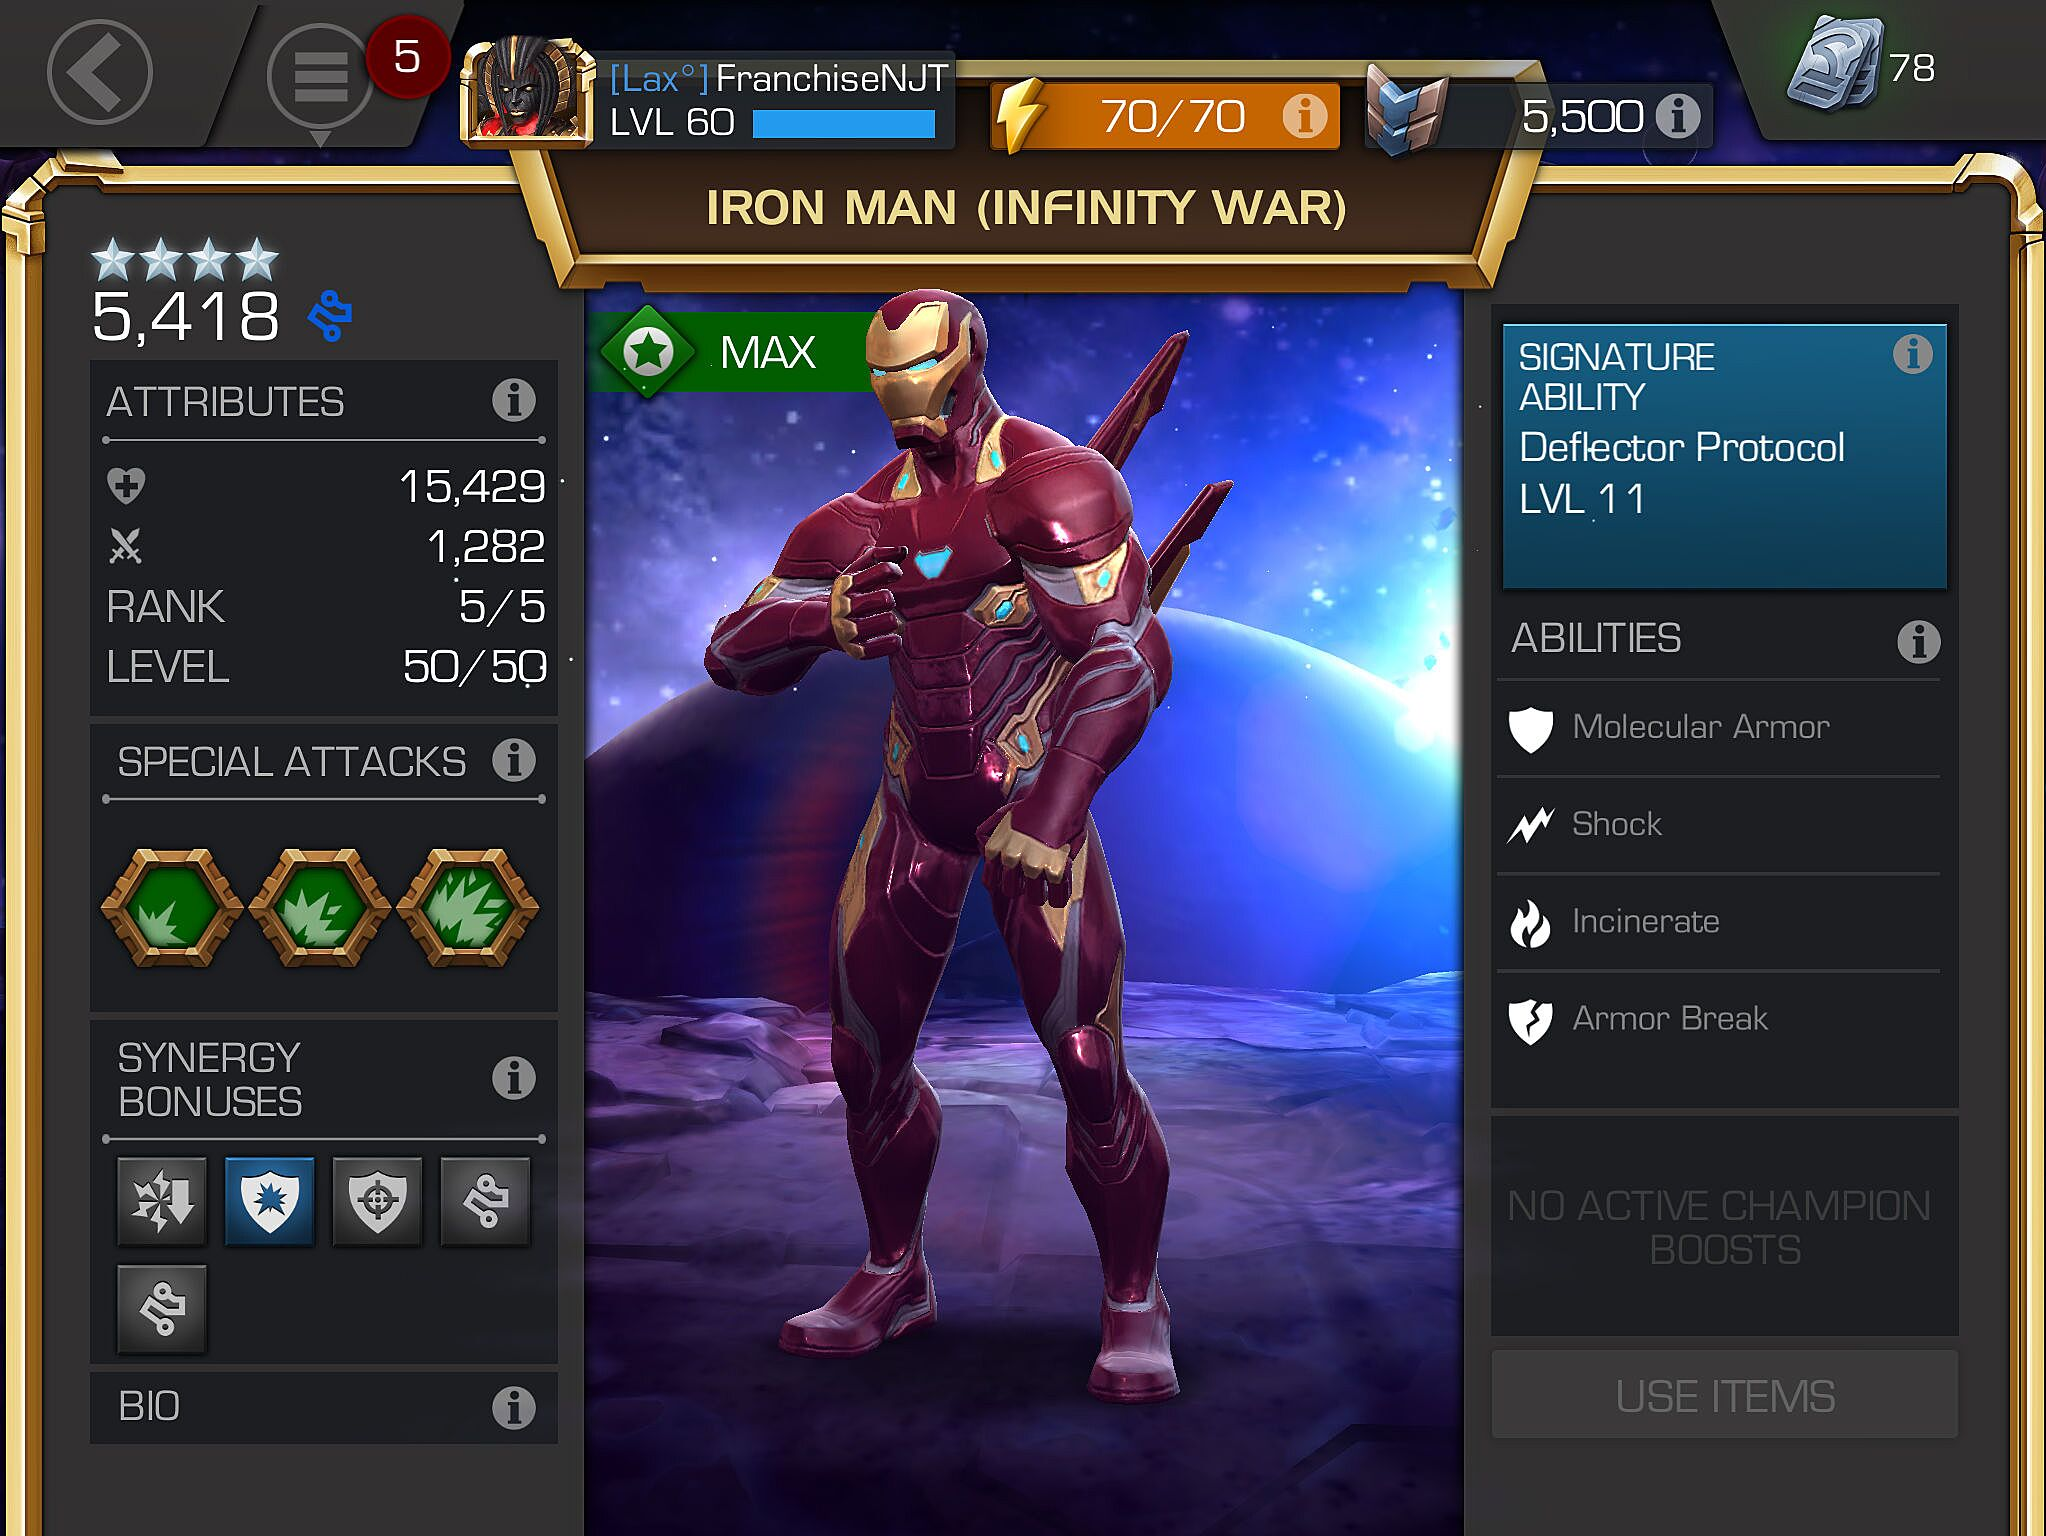 Infinity War Iron Man arrives in Marvel Contest of Champions